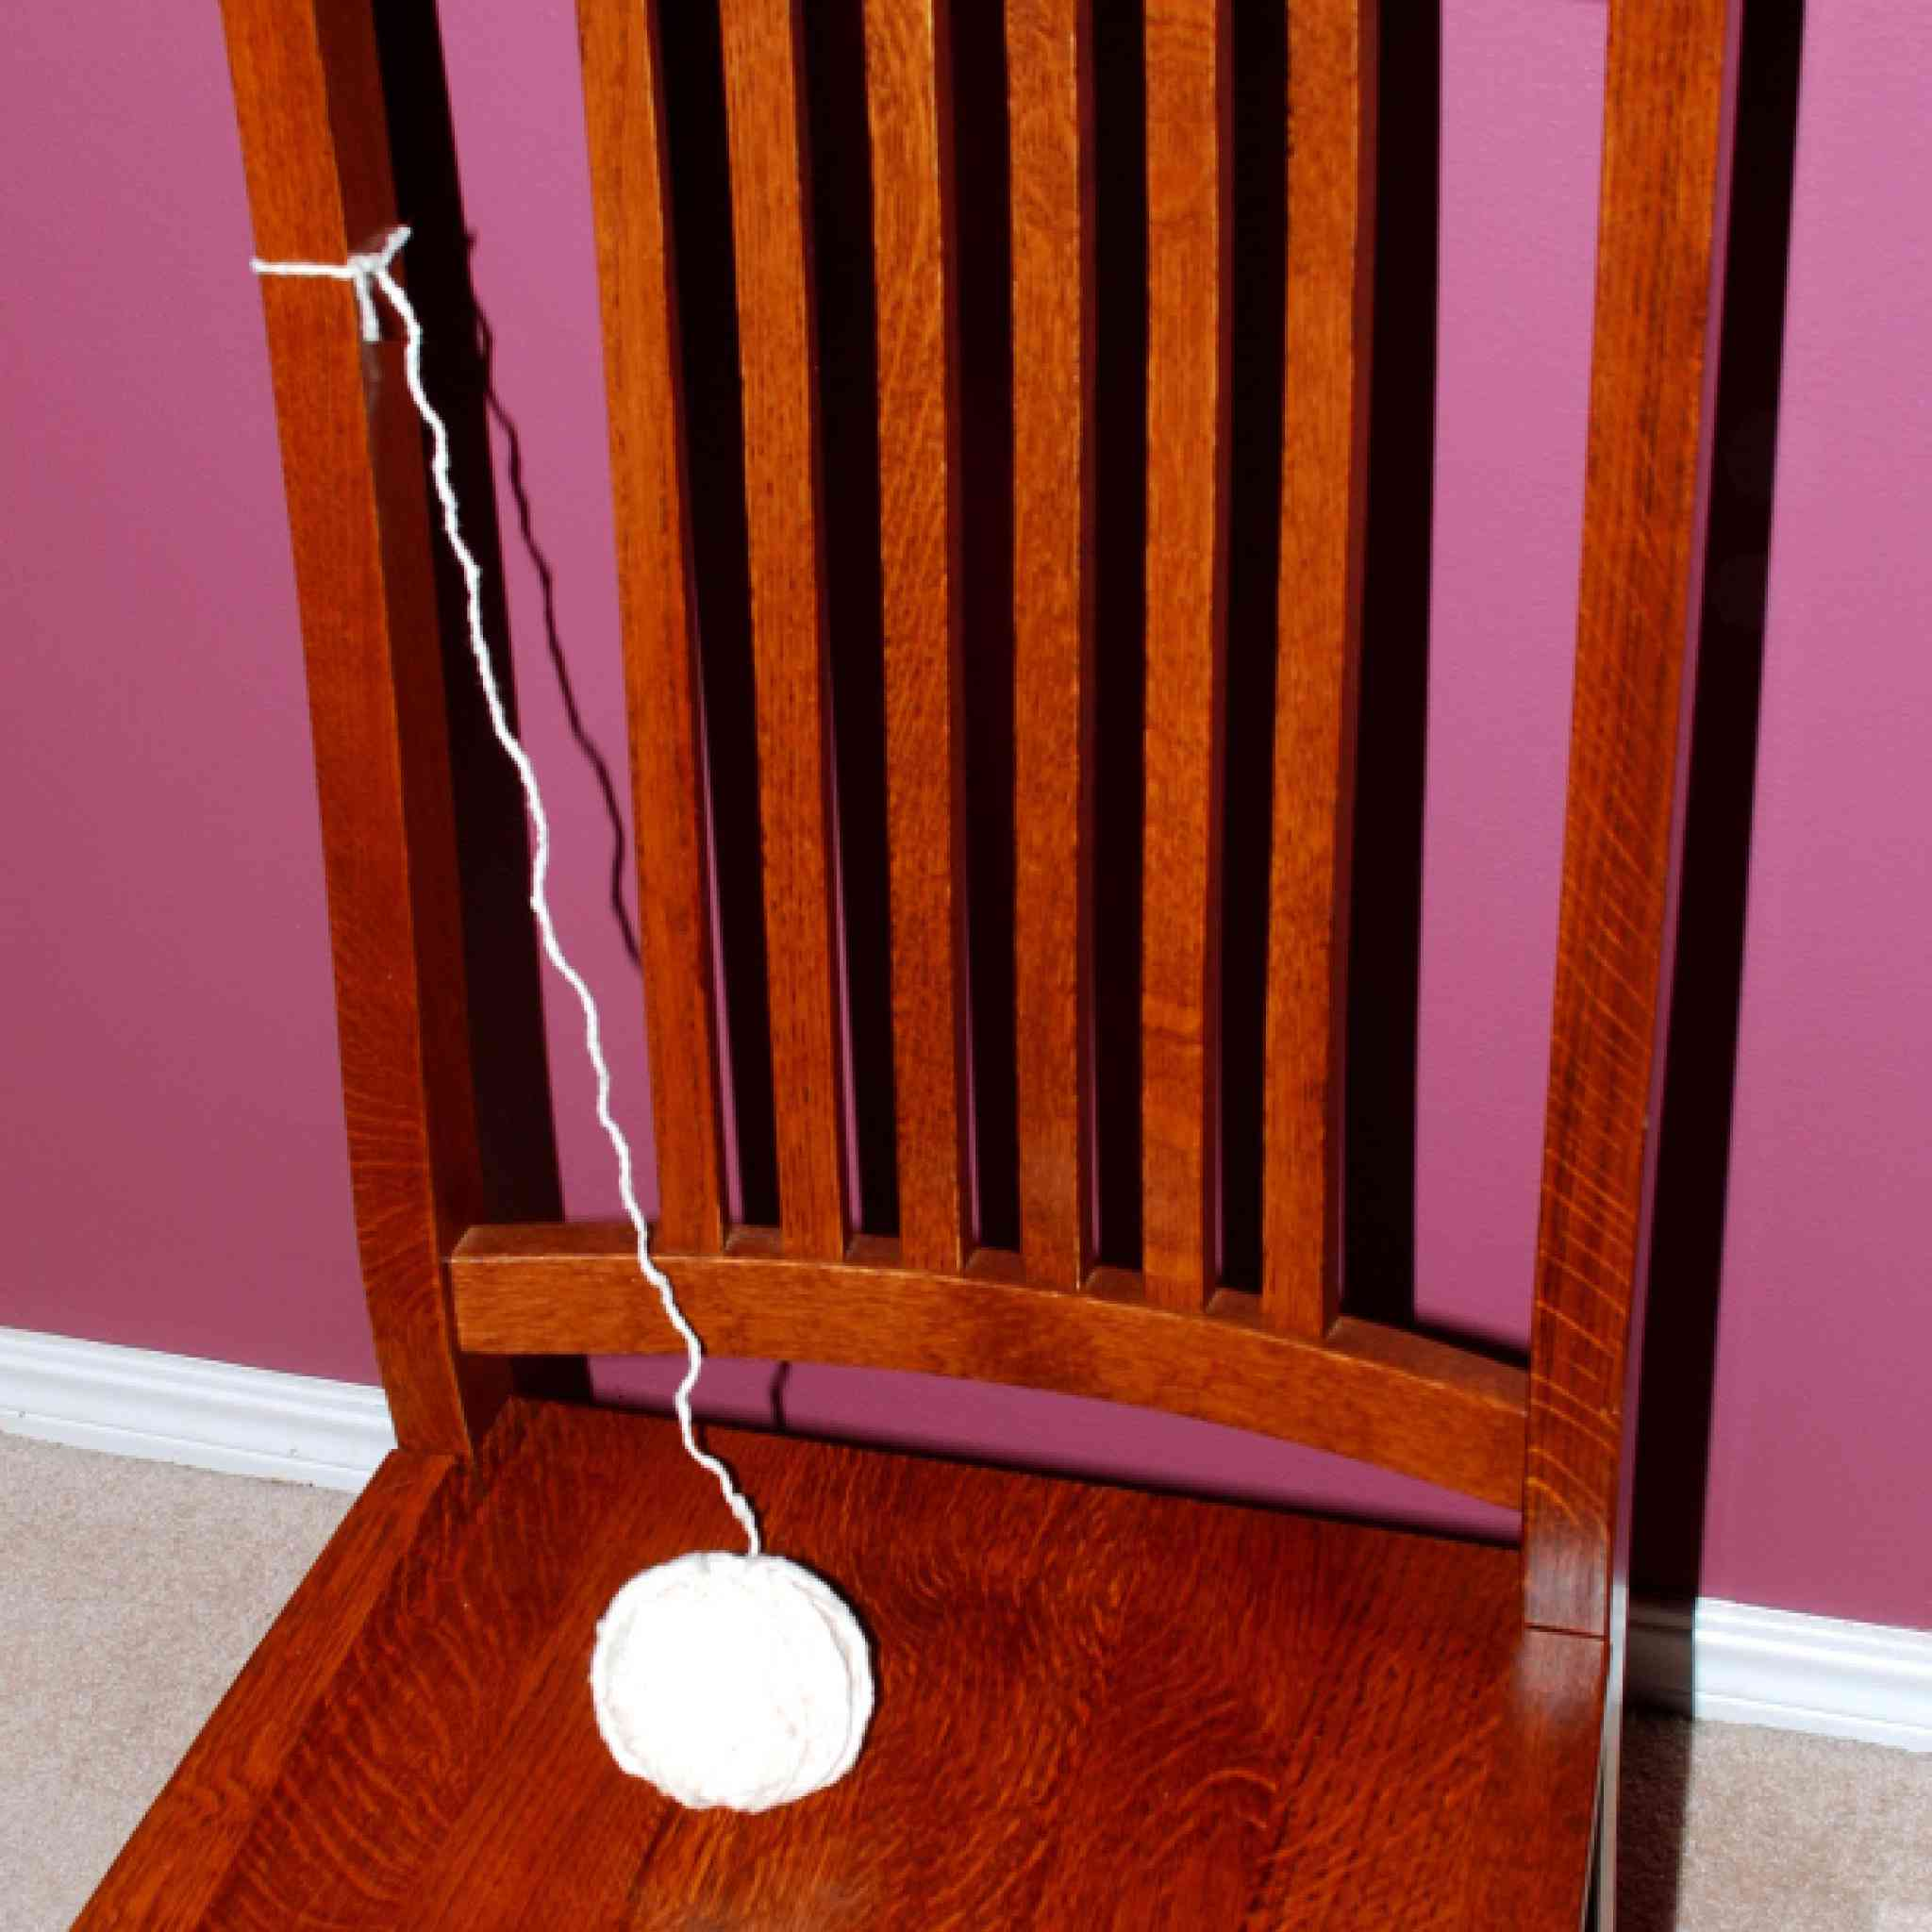 Ball of white yarn tied to a chair.